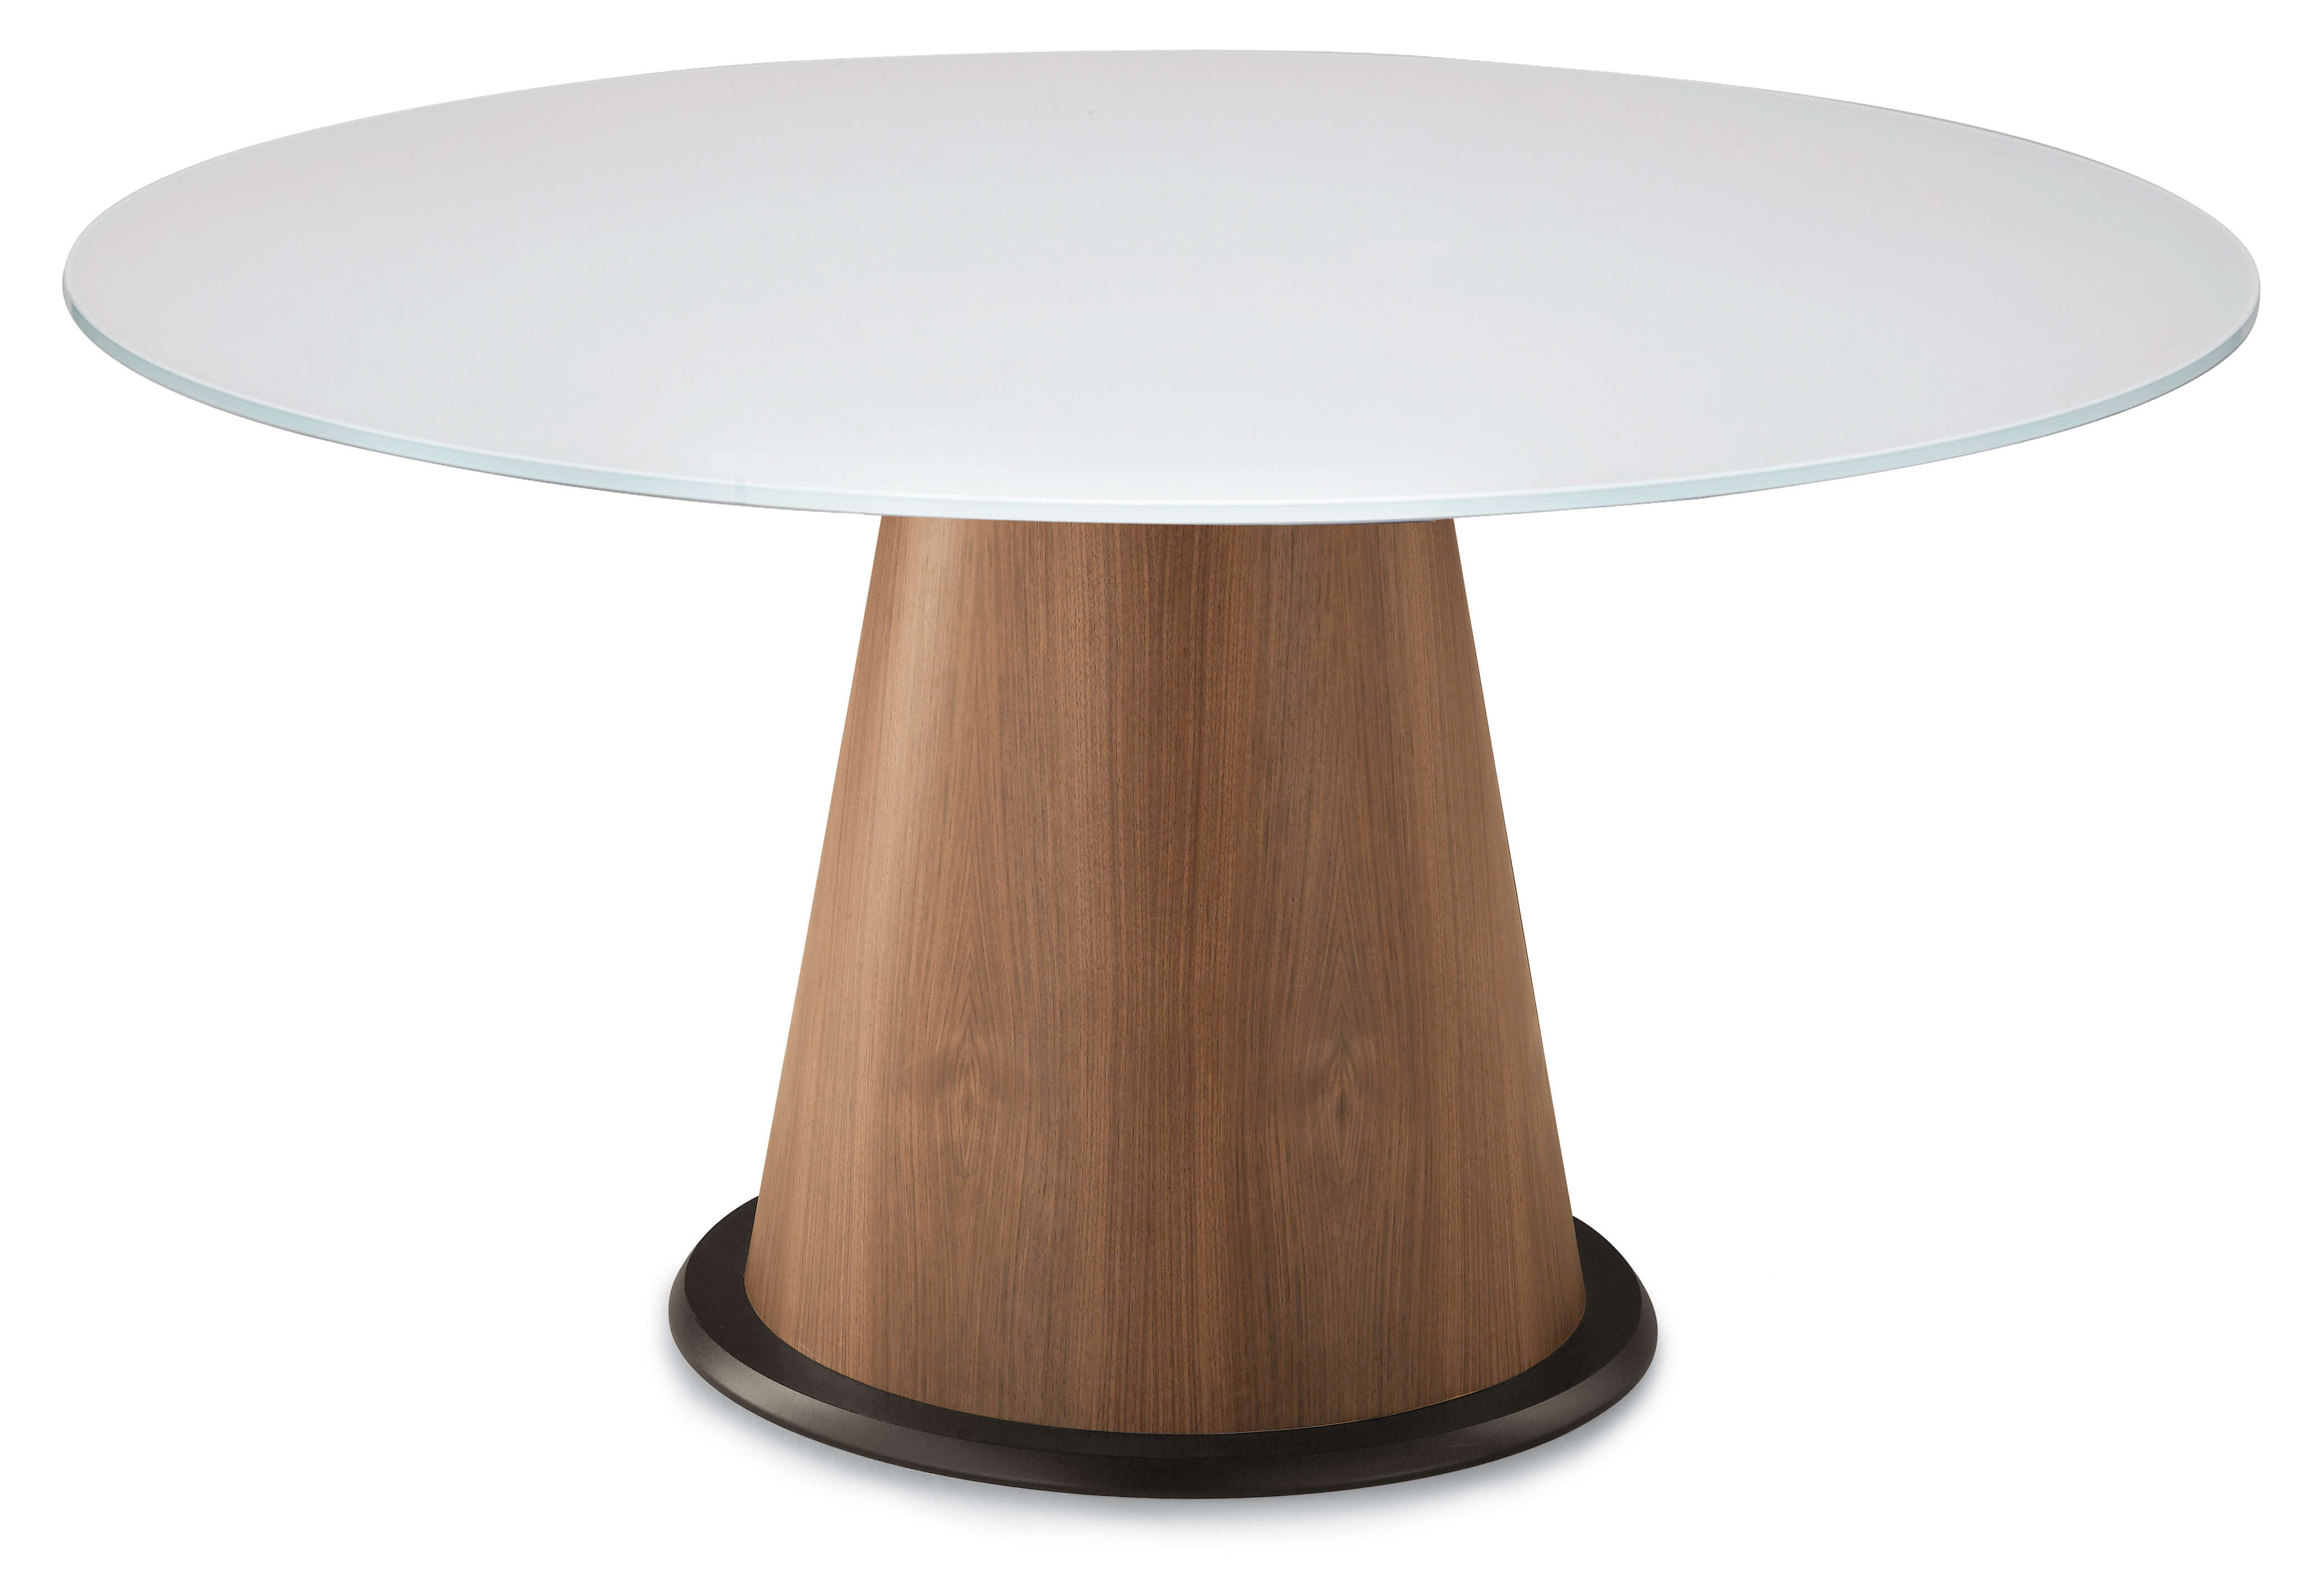 Palio-152 Round Table by DomItalia, Italy